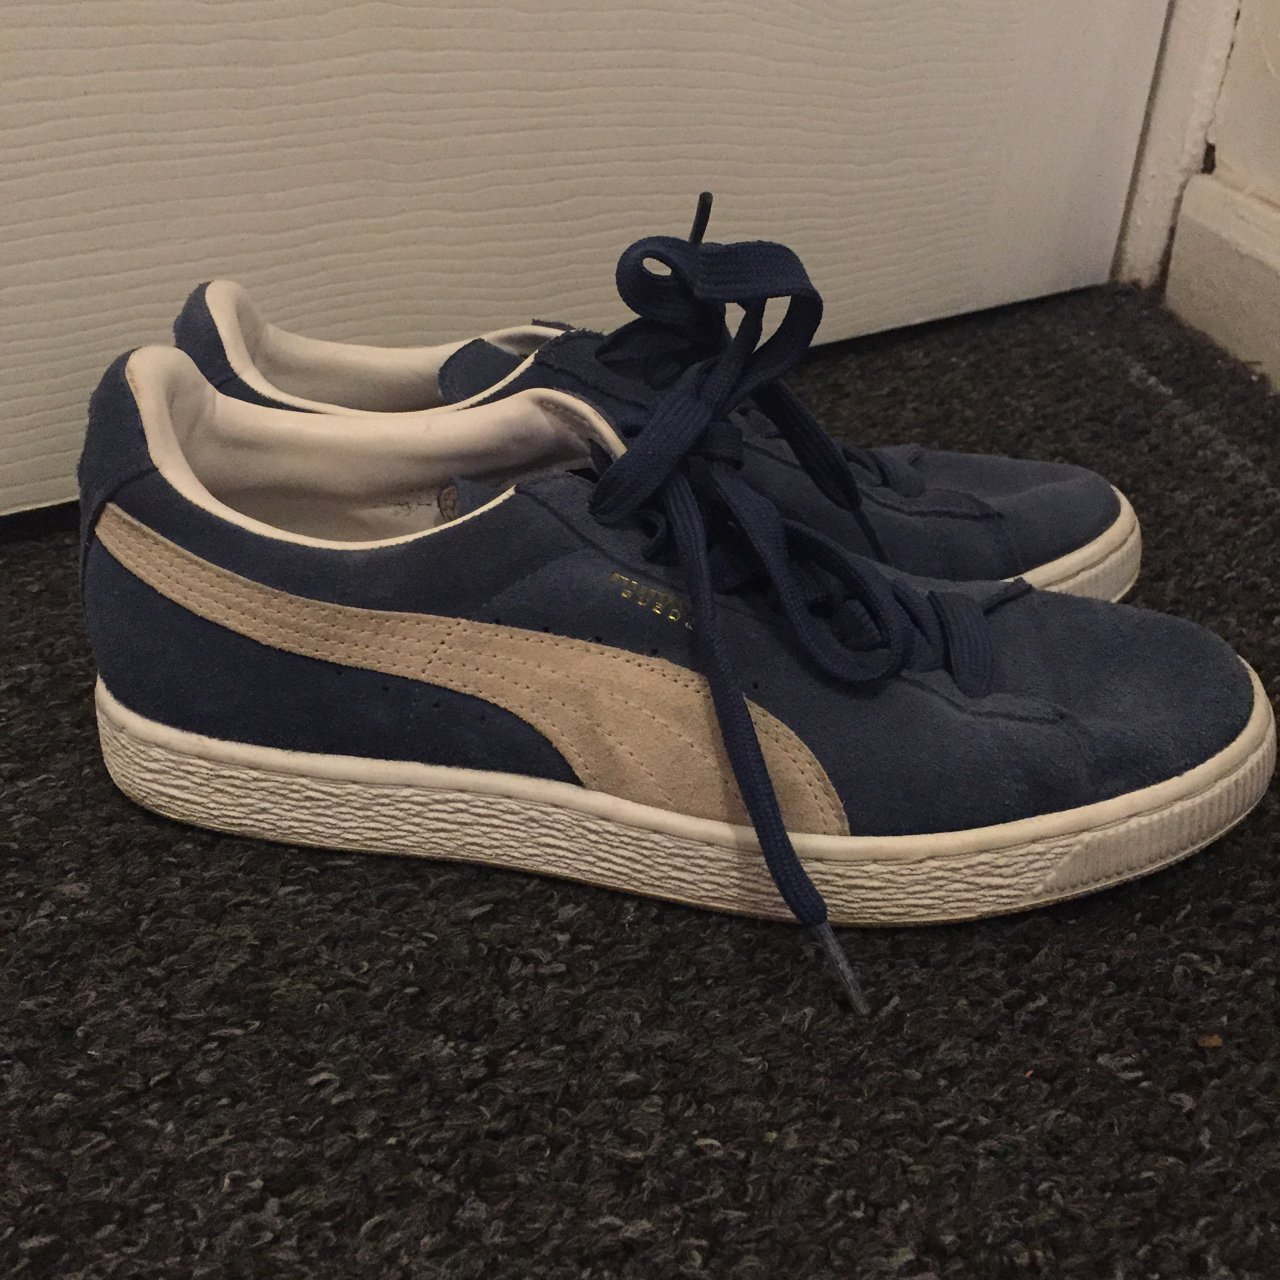 492b580b2721fa SIZE 6. Blue PUMA SUEDE. Worn but only once or twice. Can be - Depop